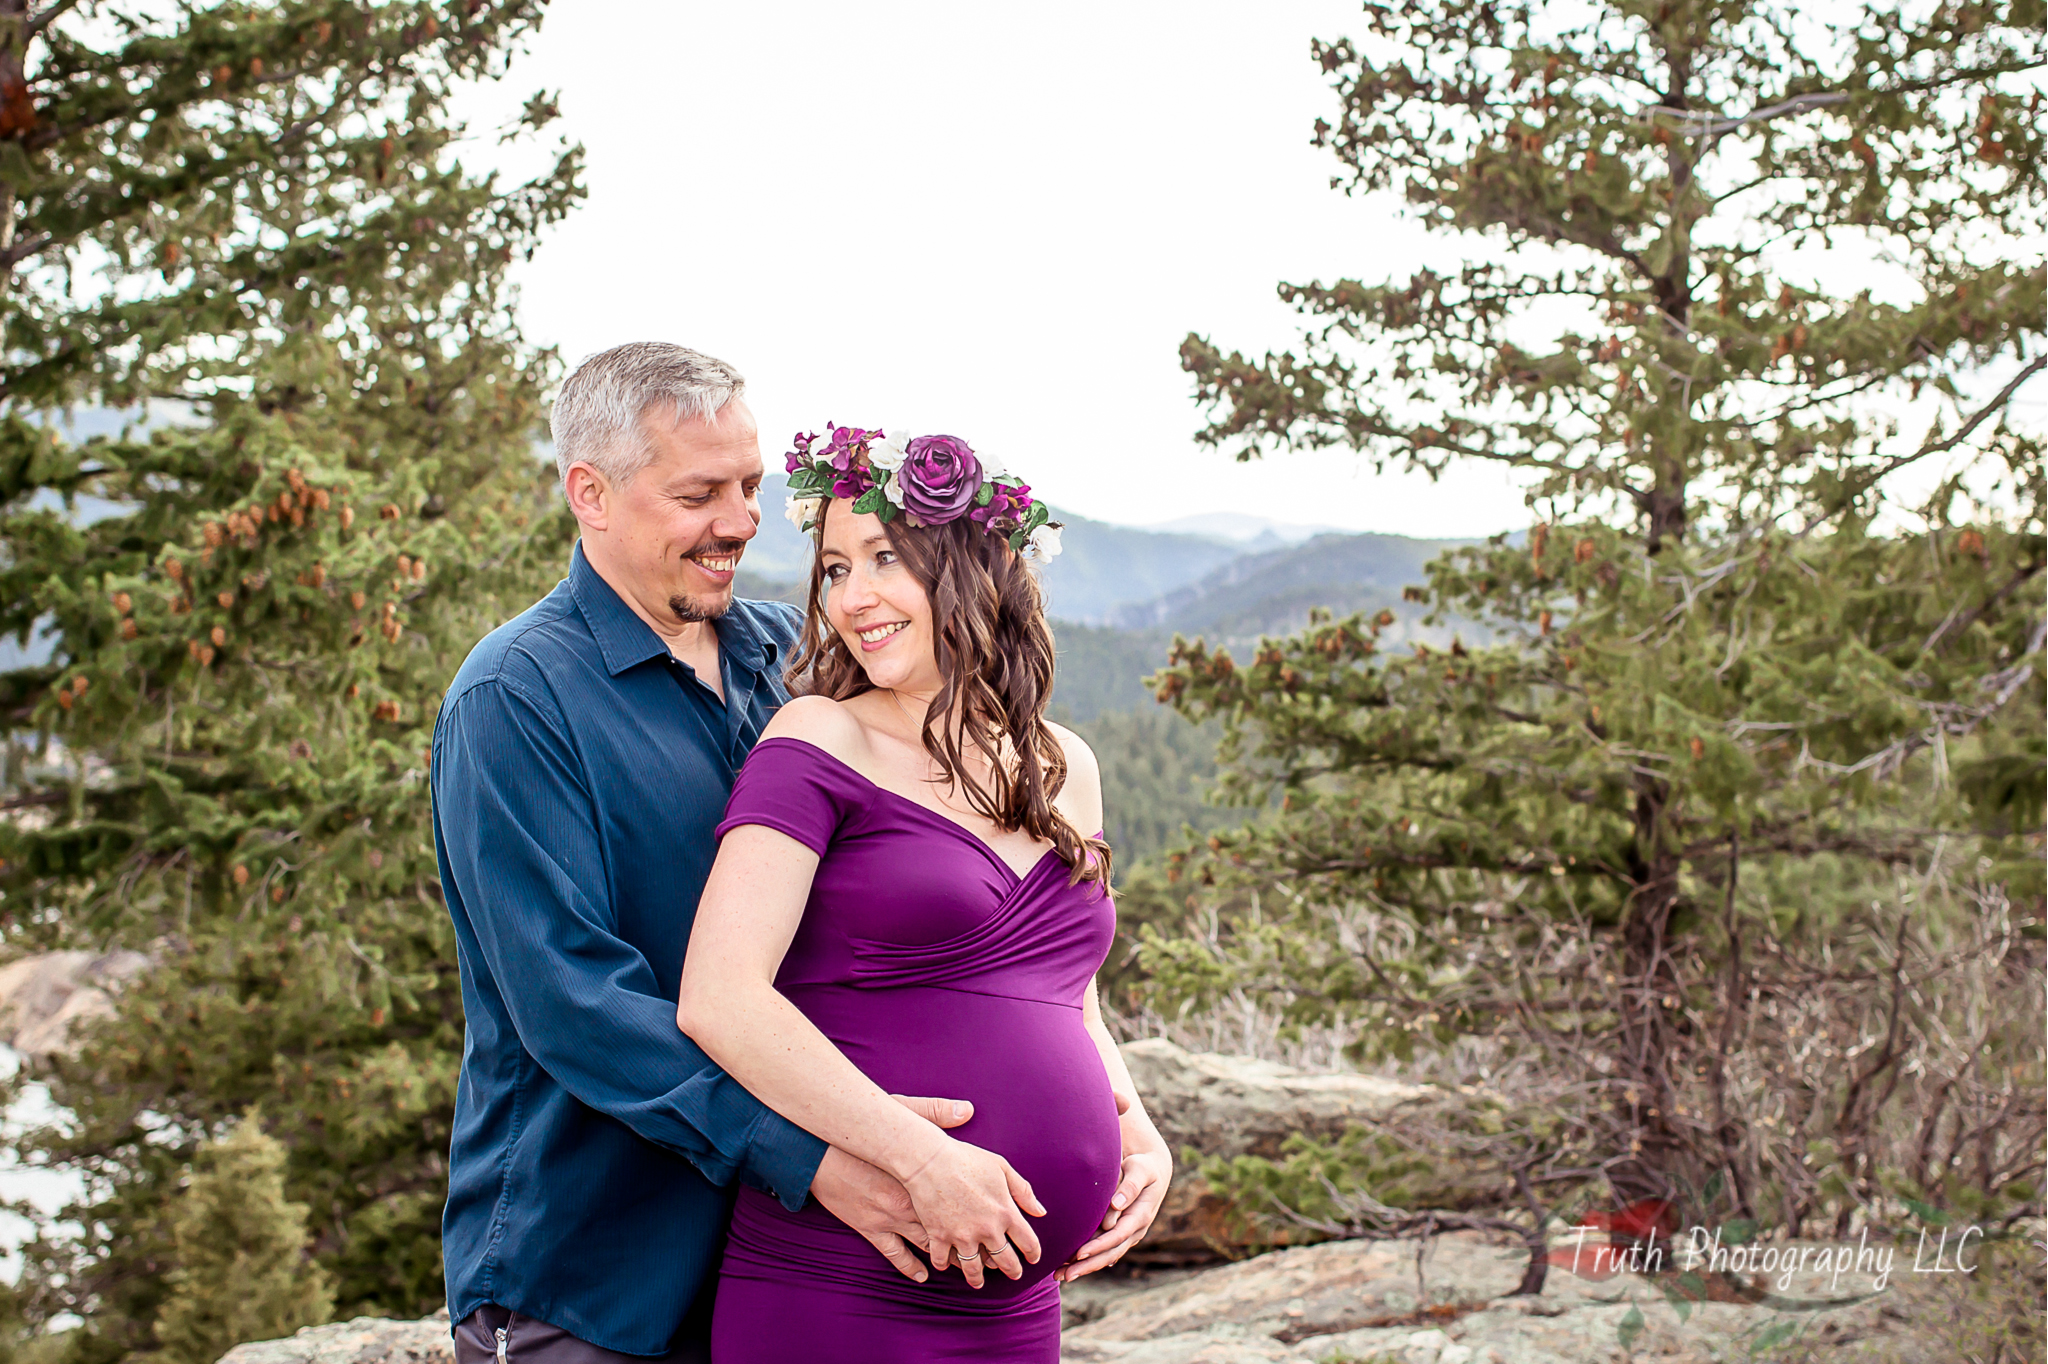 Truth-Photography-Boulder-co-Maternity-photographer.jpg